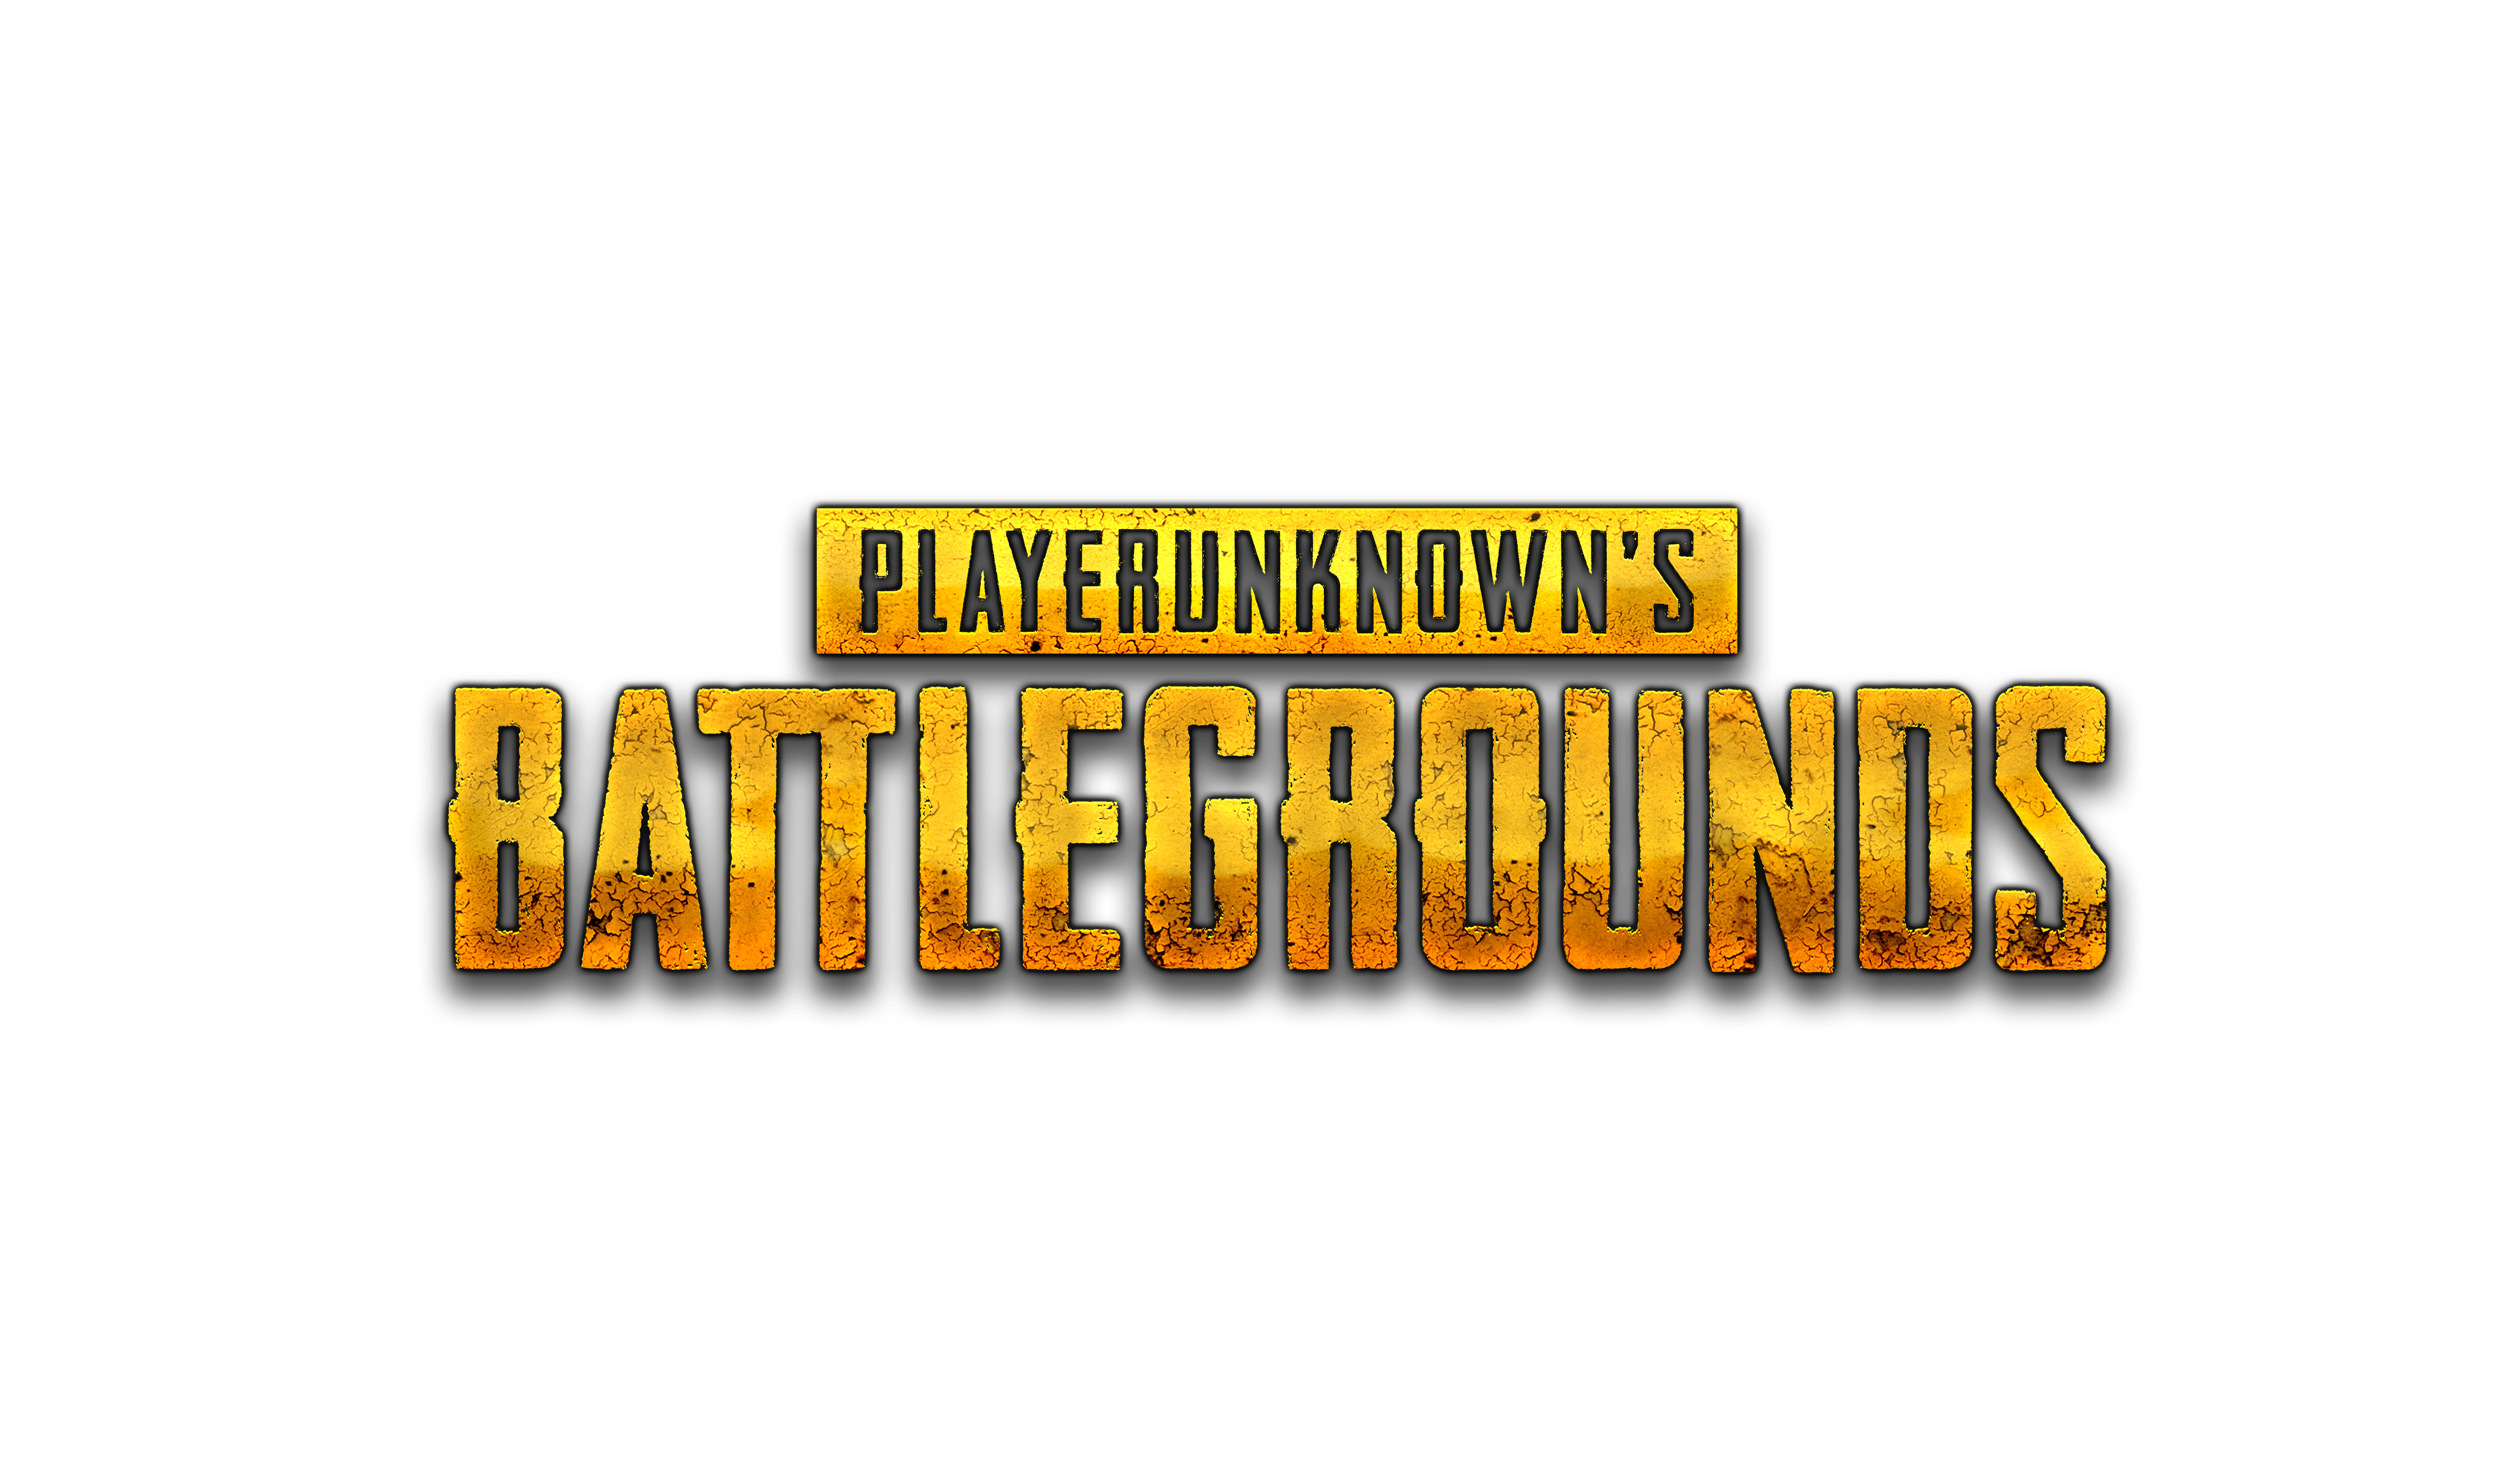 Playerunknown's Battlegrounds Logo (pubg) PNG Image